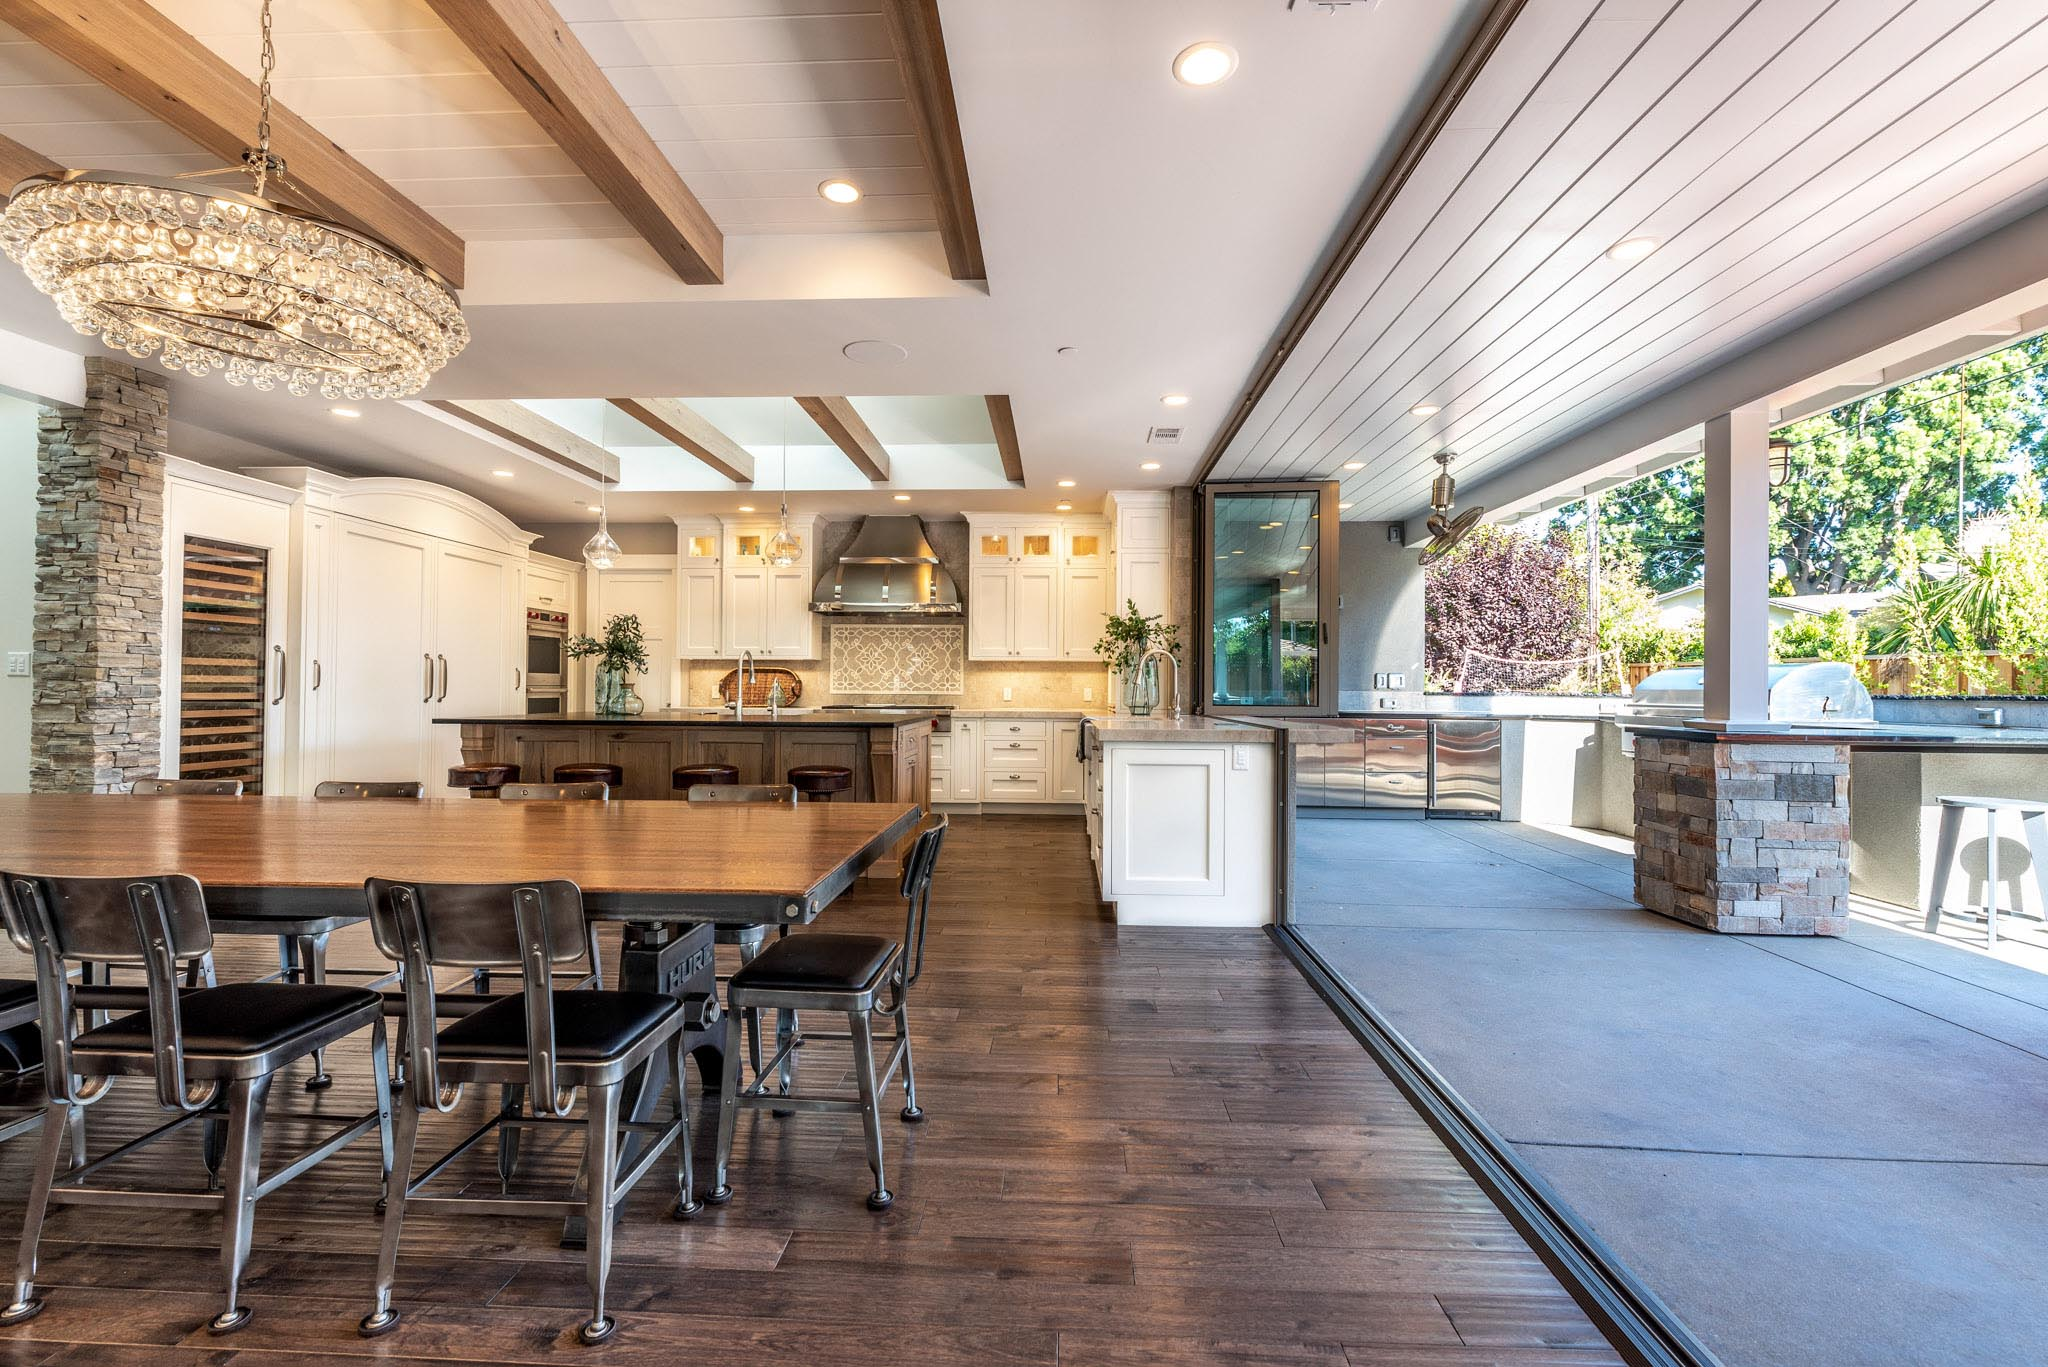 indoor/outdoor kitchen renovation ideas from luxurious home design